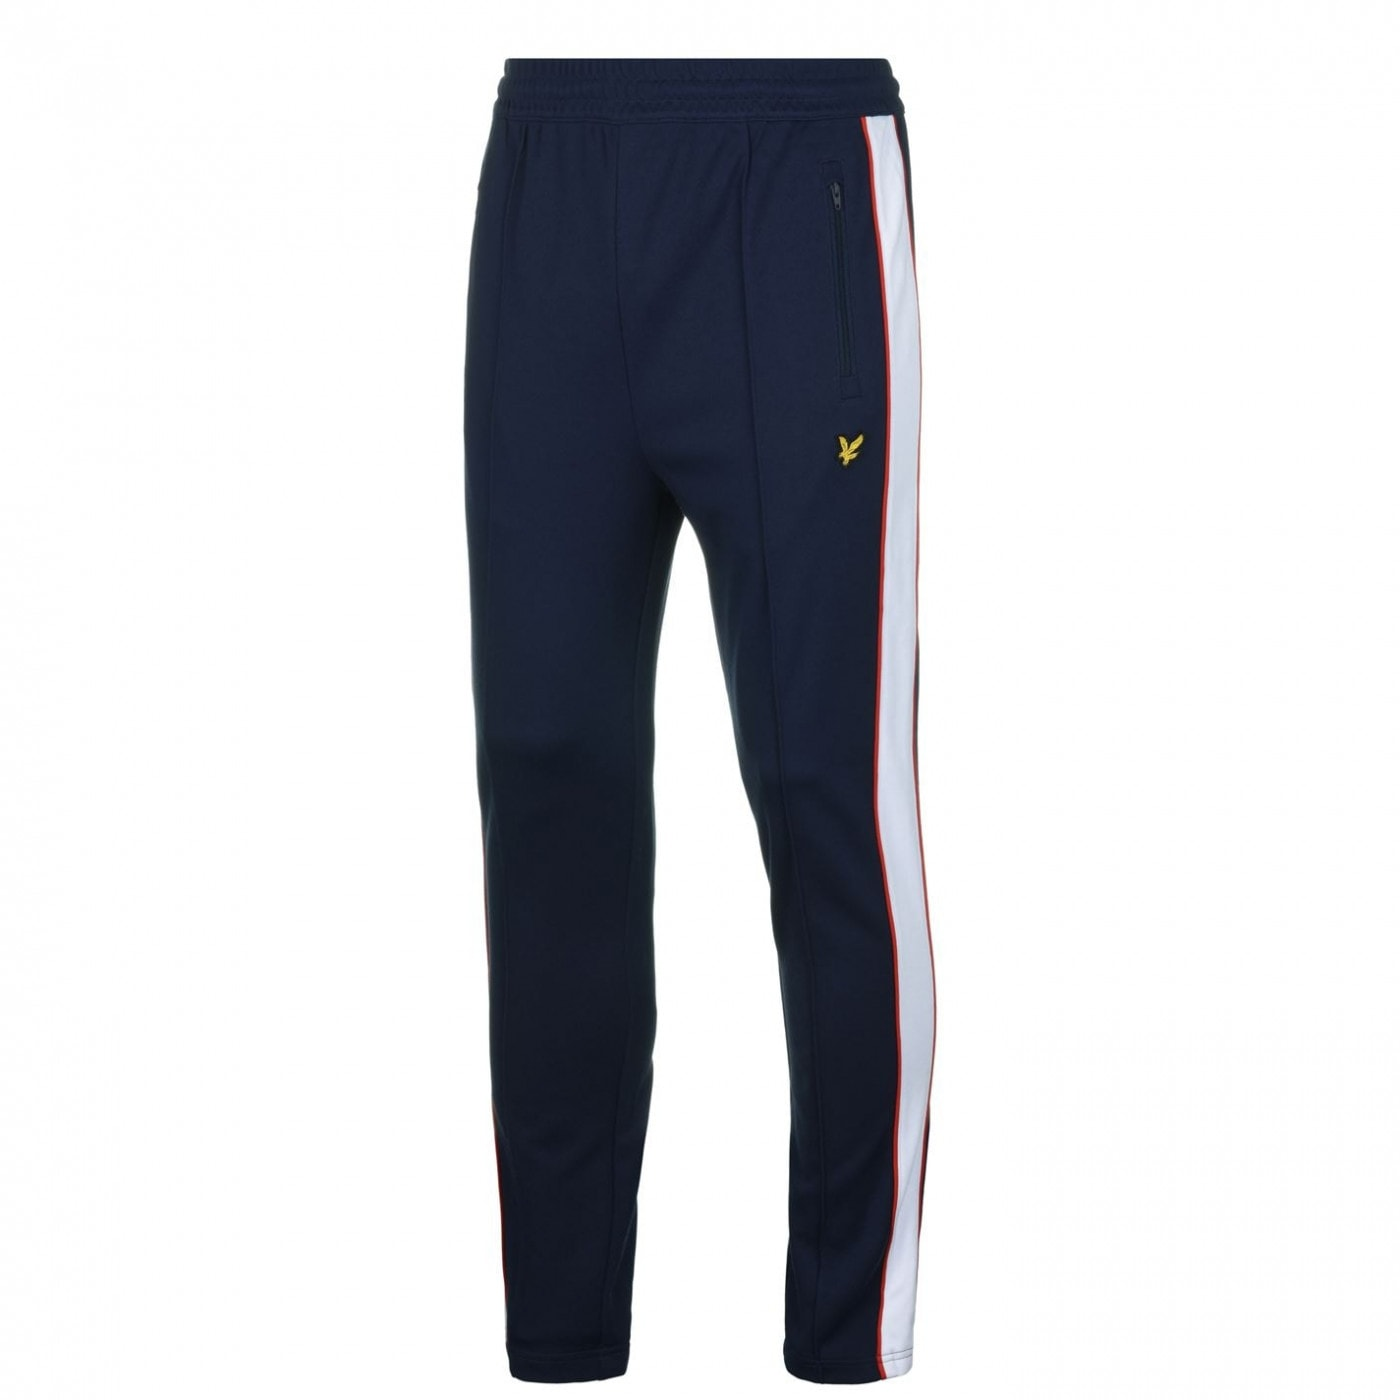 Lyle and Scott Tracksuit Bottoms